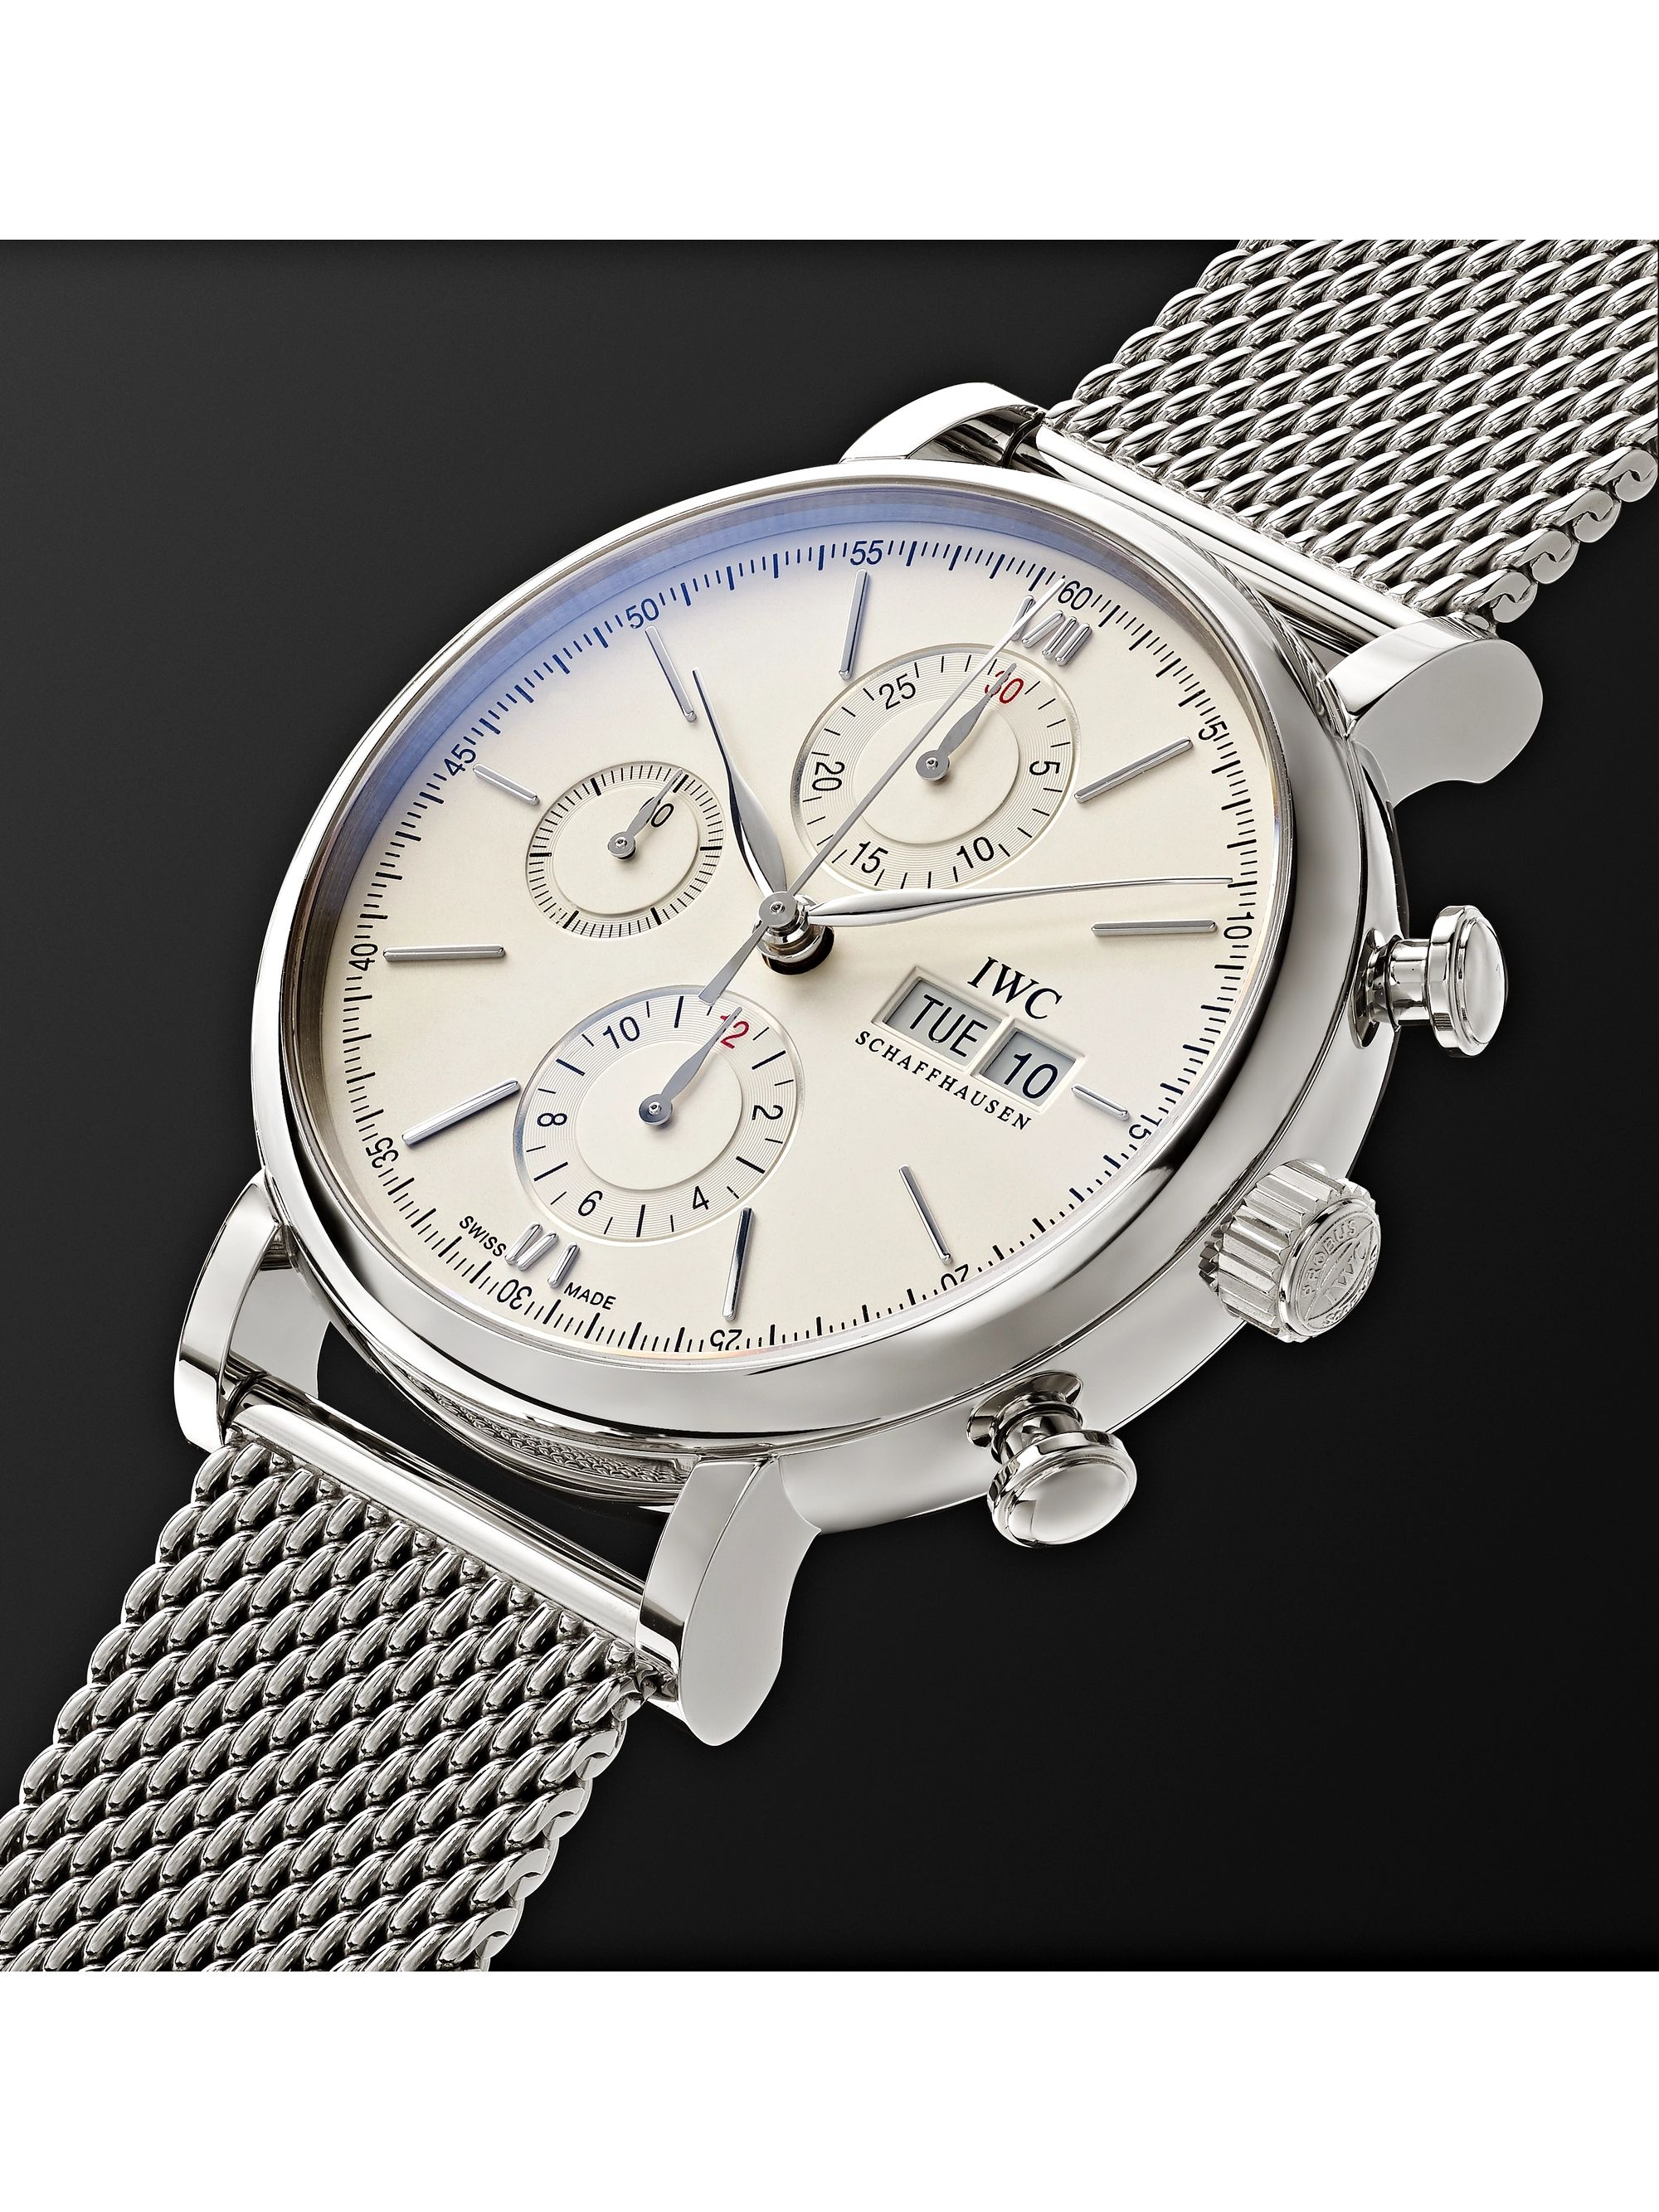 IWC SCHAFFHAUSEN Portofino Automatic Chronograph 42mm Stainless Steel Watch, Ref. No. IW391028